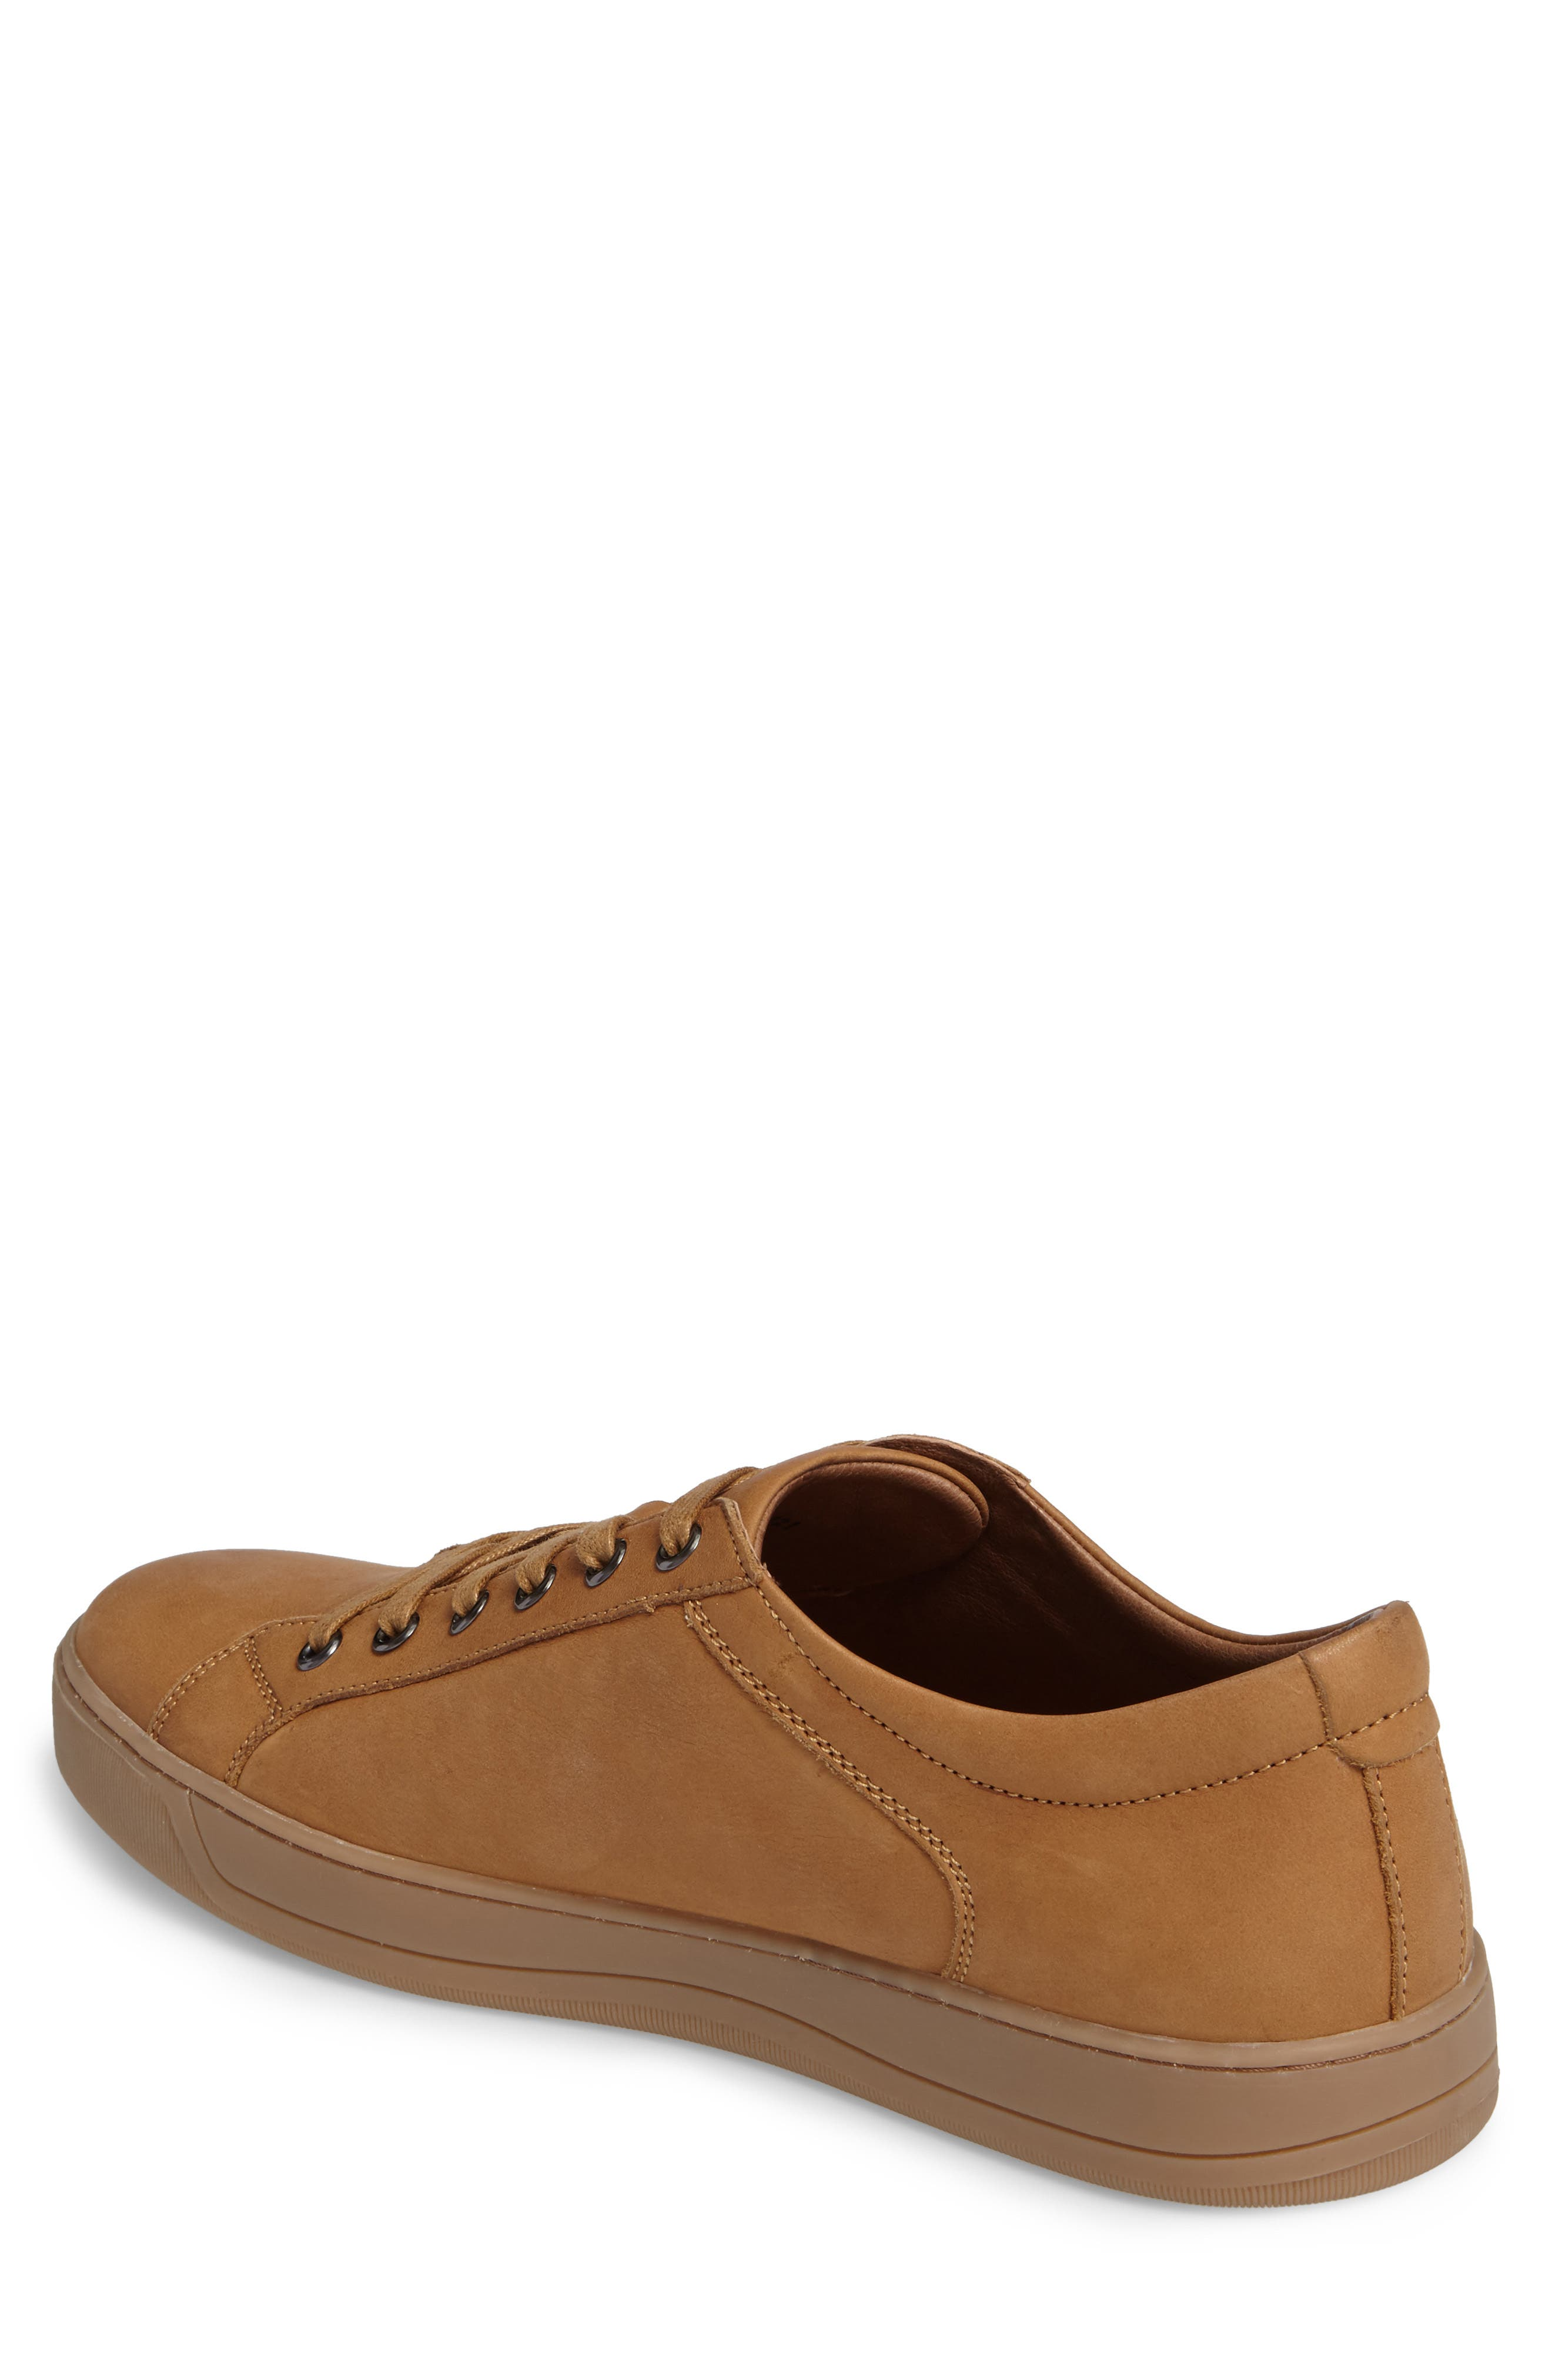 Allister Sneaker,                             Alternate thumbnail 2, color,                             Natural Leather